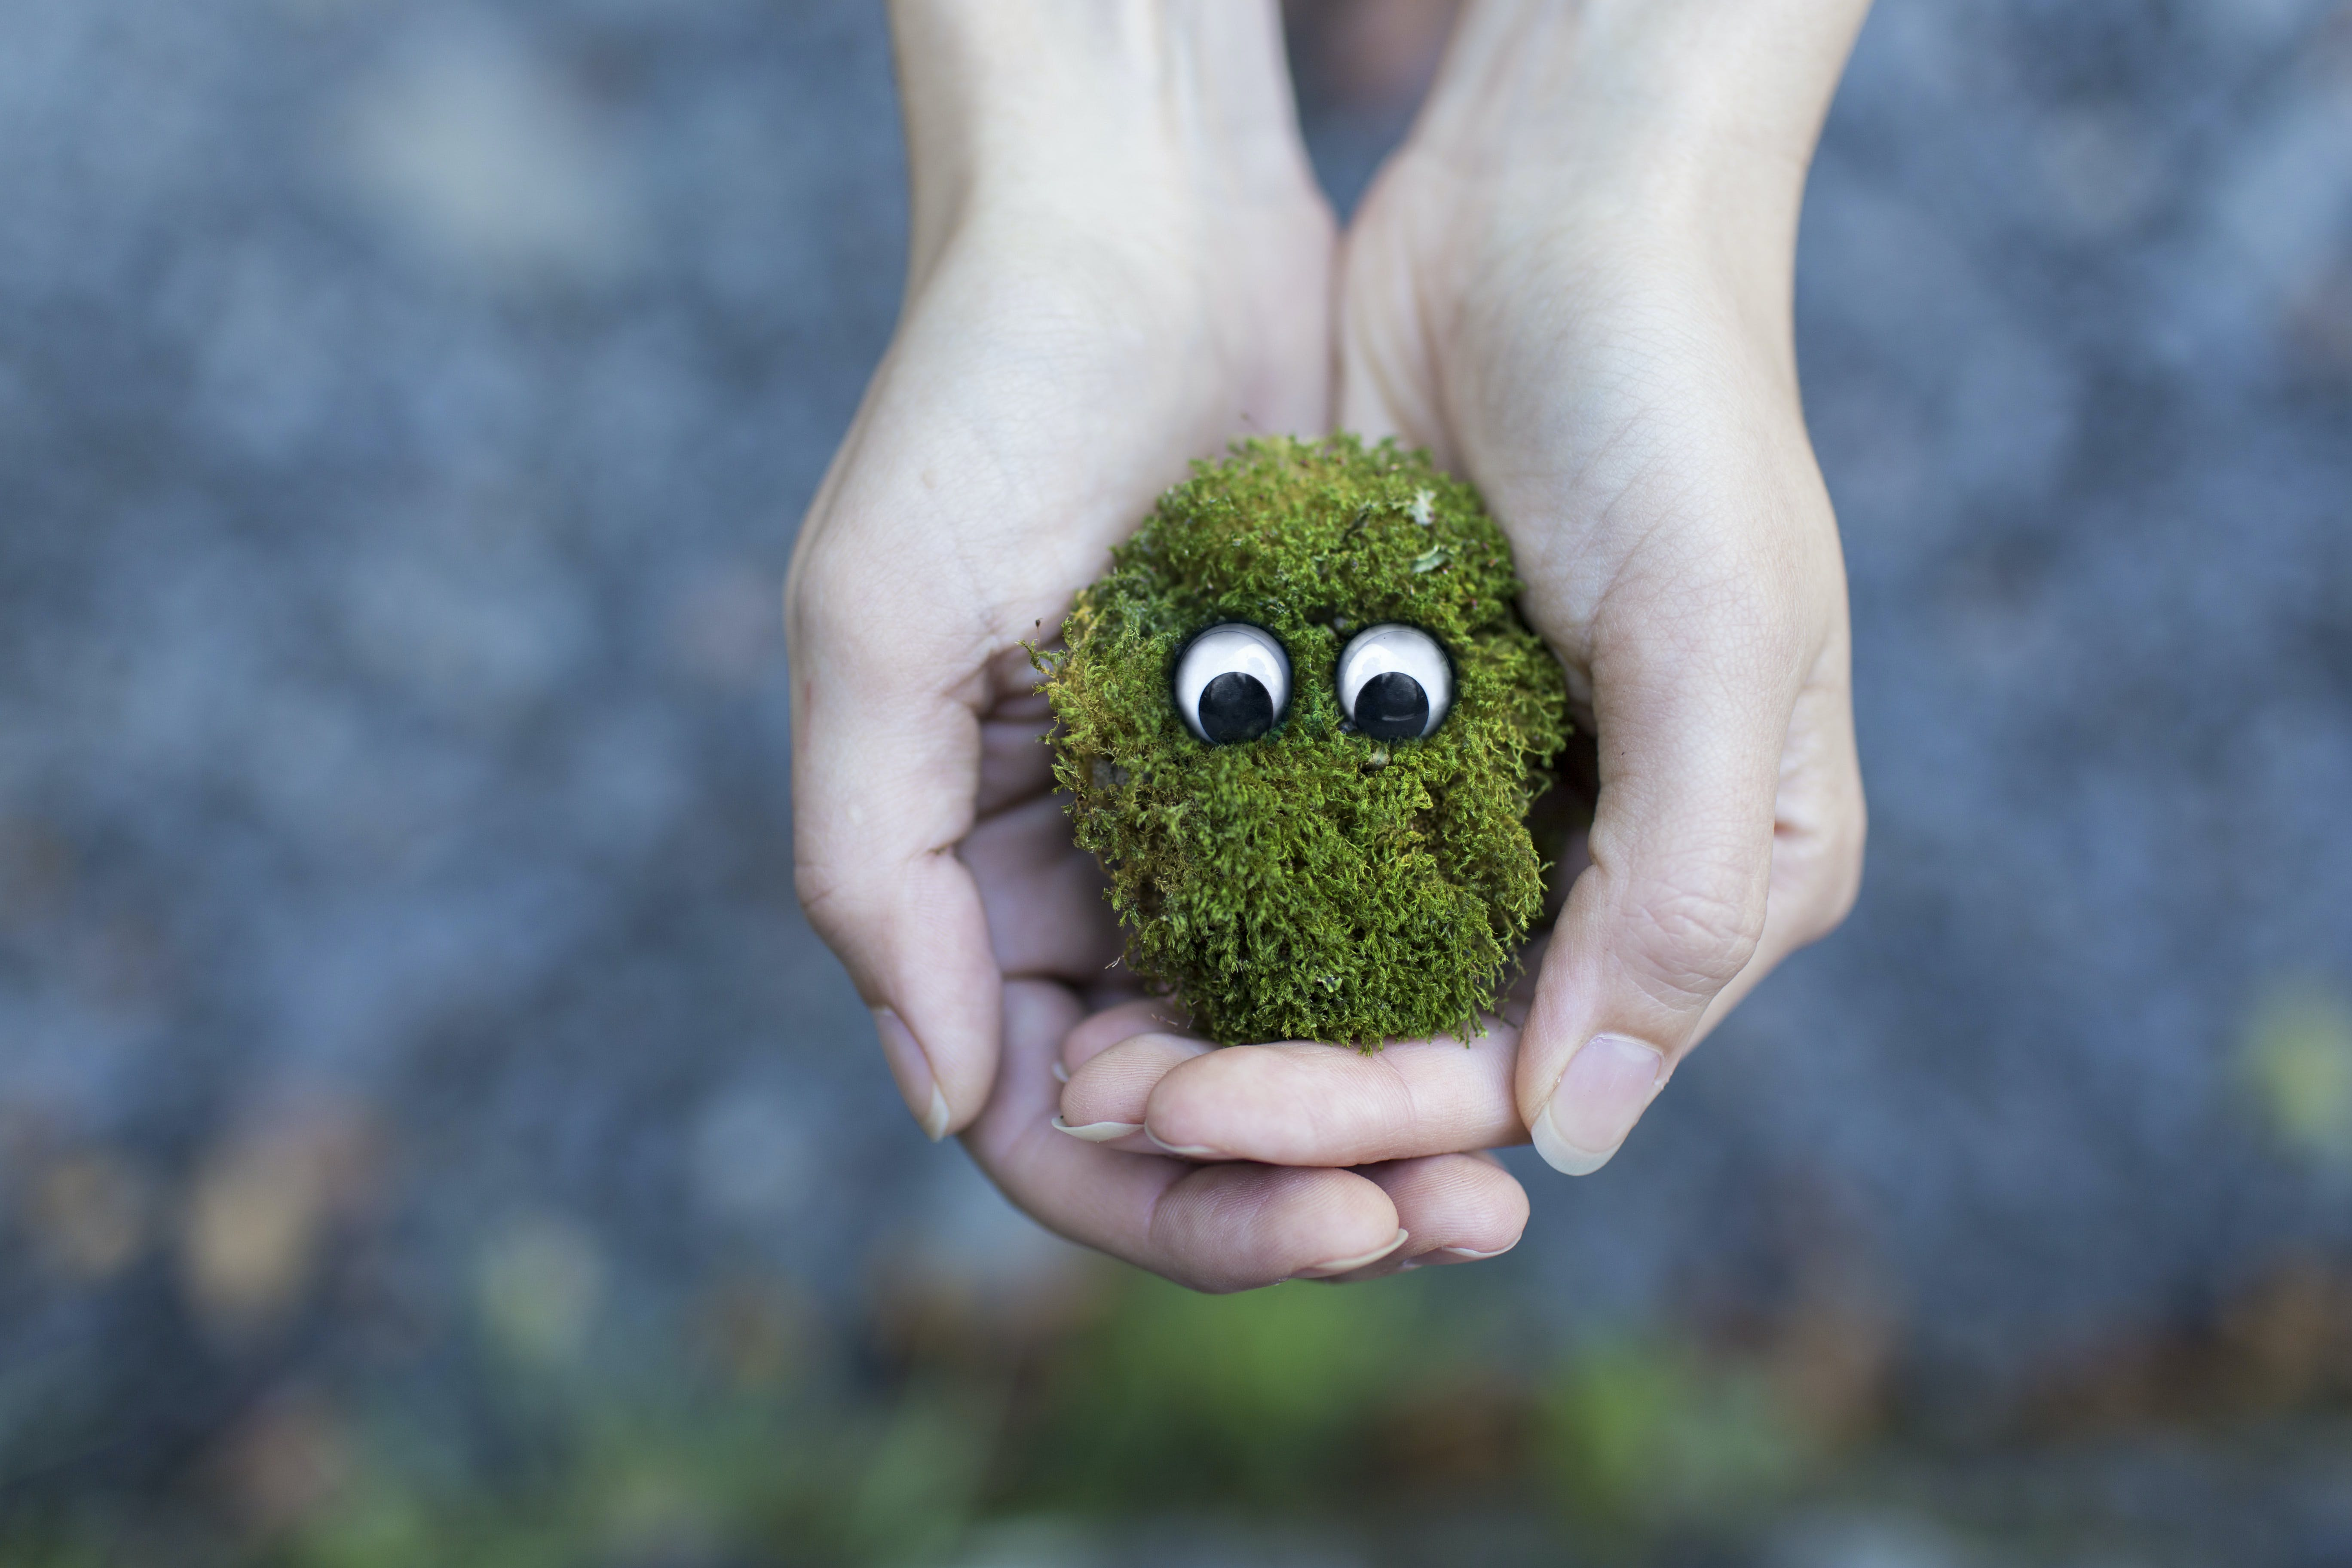 Person Showing Green Plant With Eyes